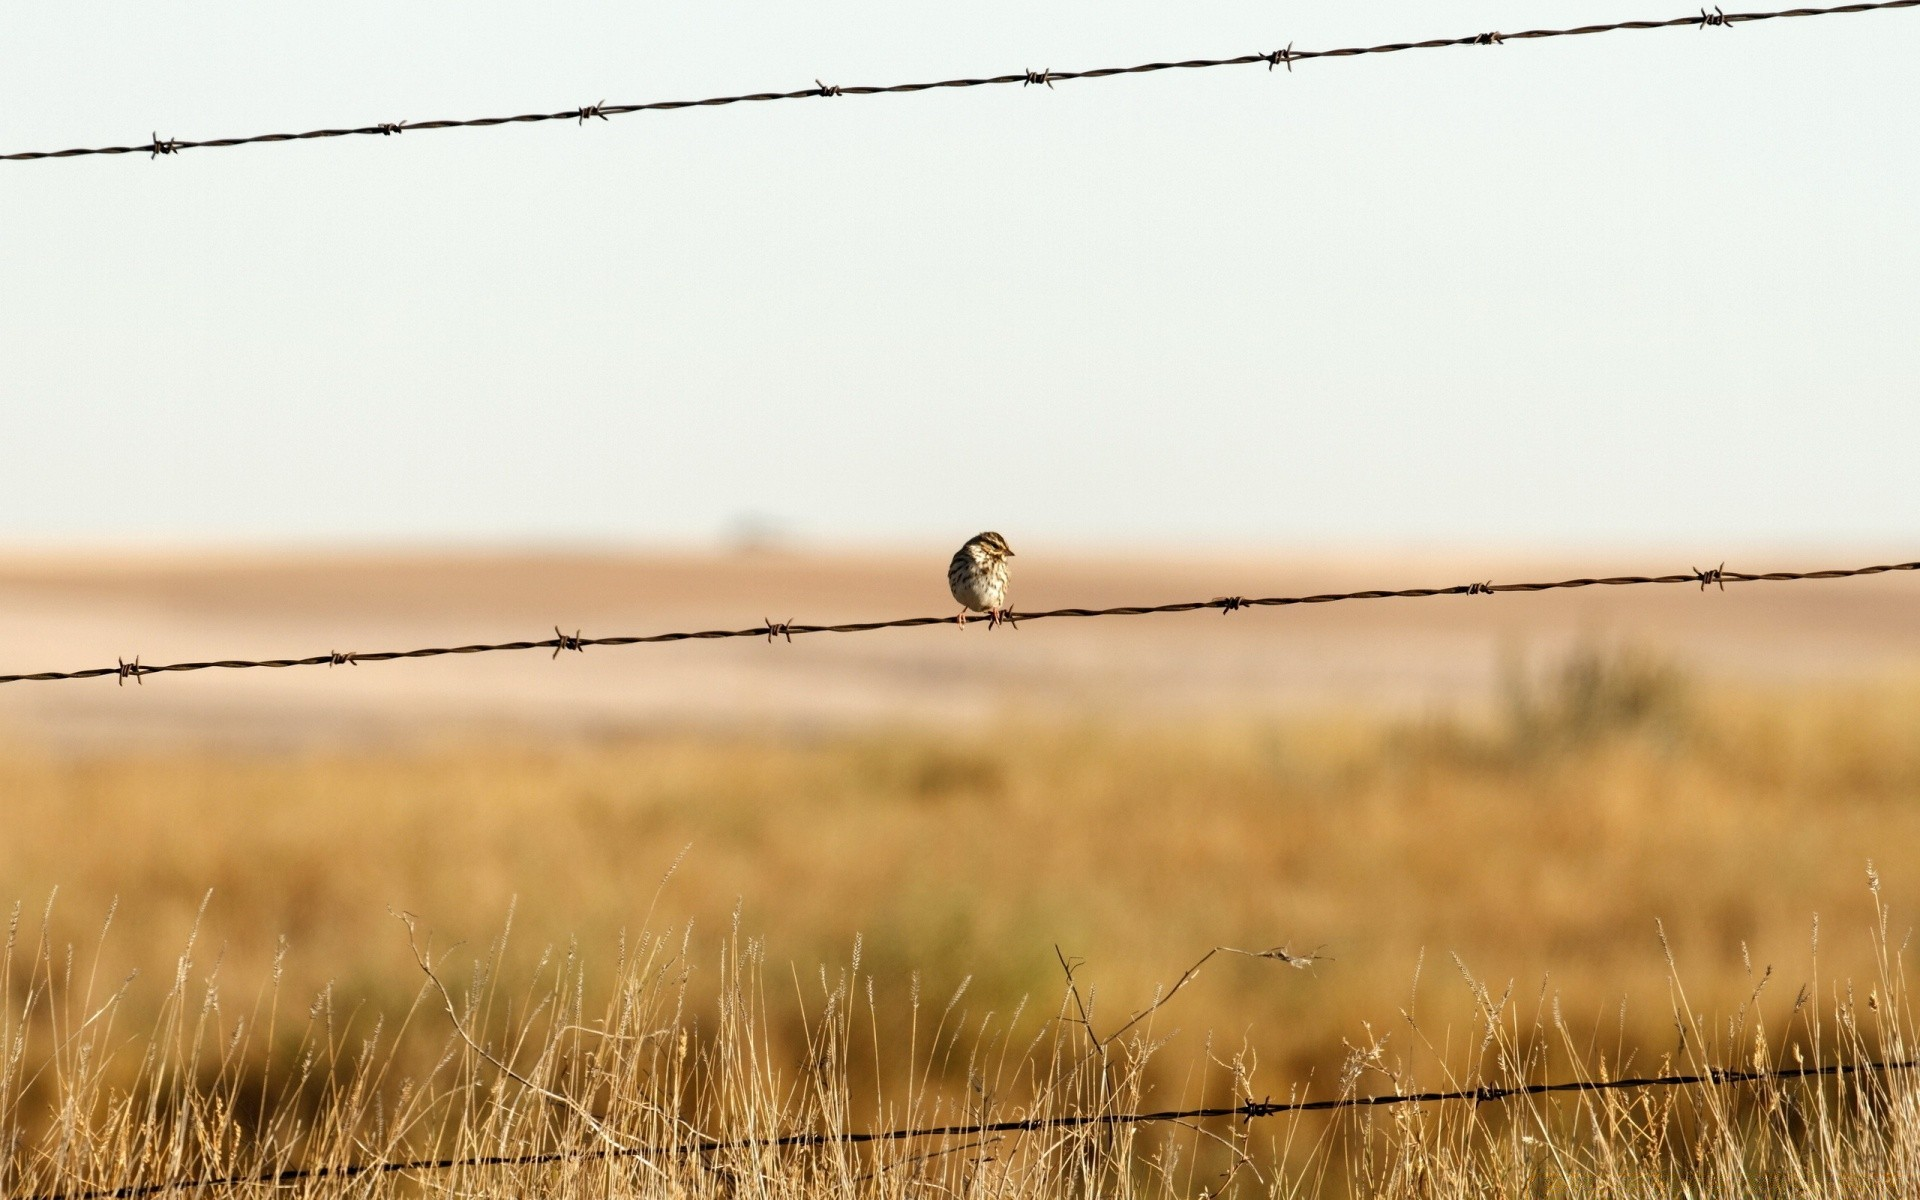 Gray And Orange Bird On Barb Wire Hd Wallpaper Wallpaper Flare